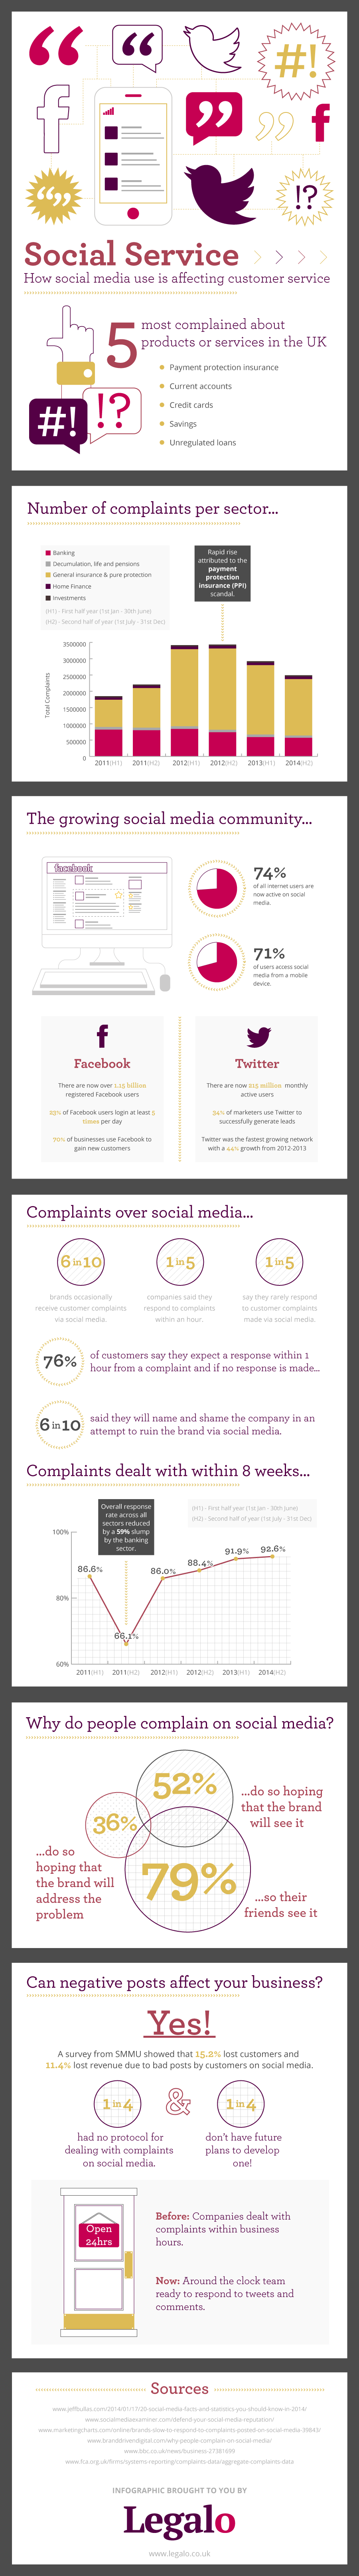 How Social Media Is Affecting Customer Service